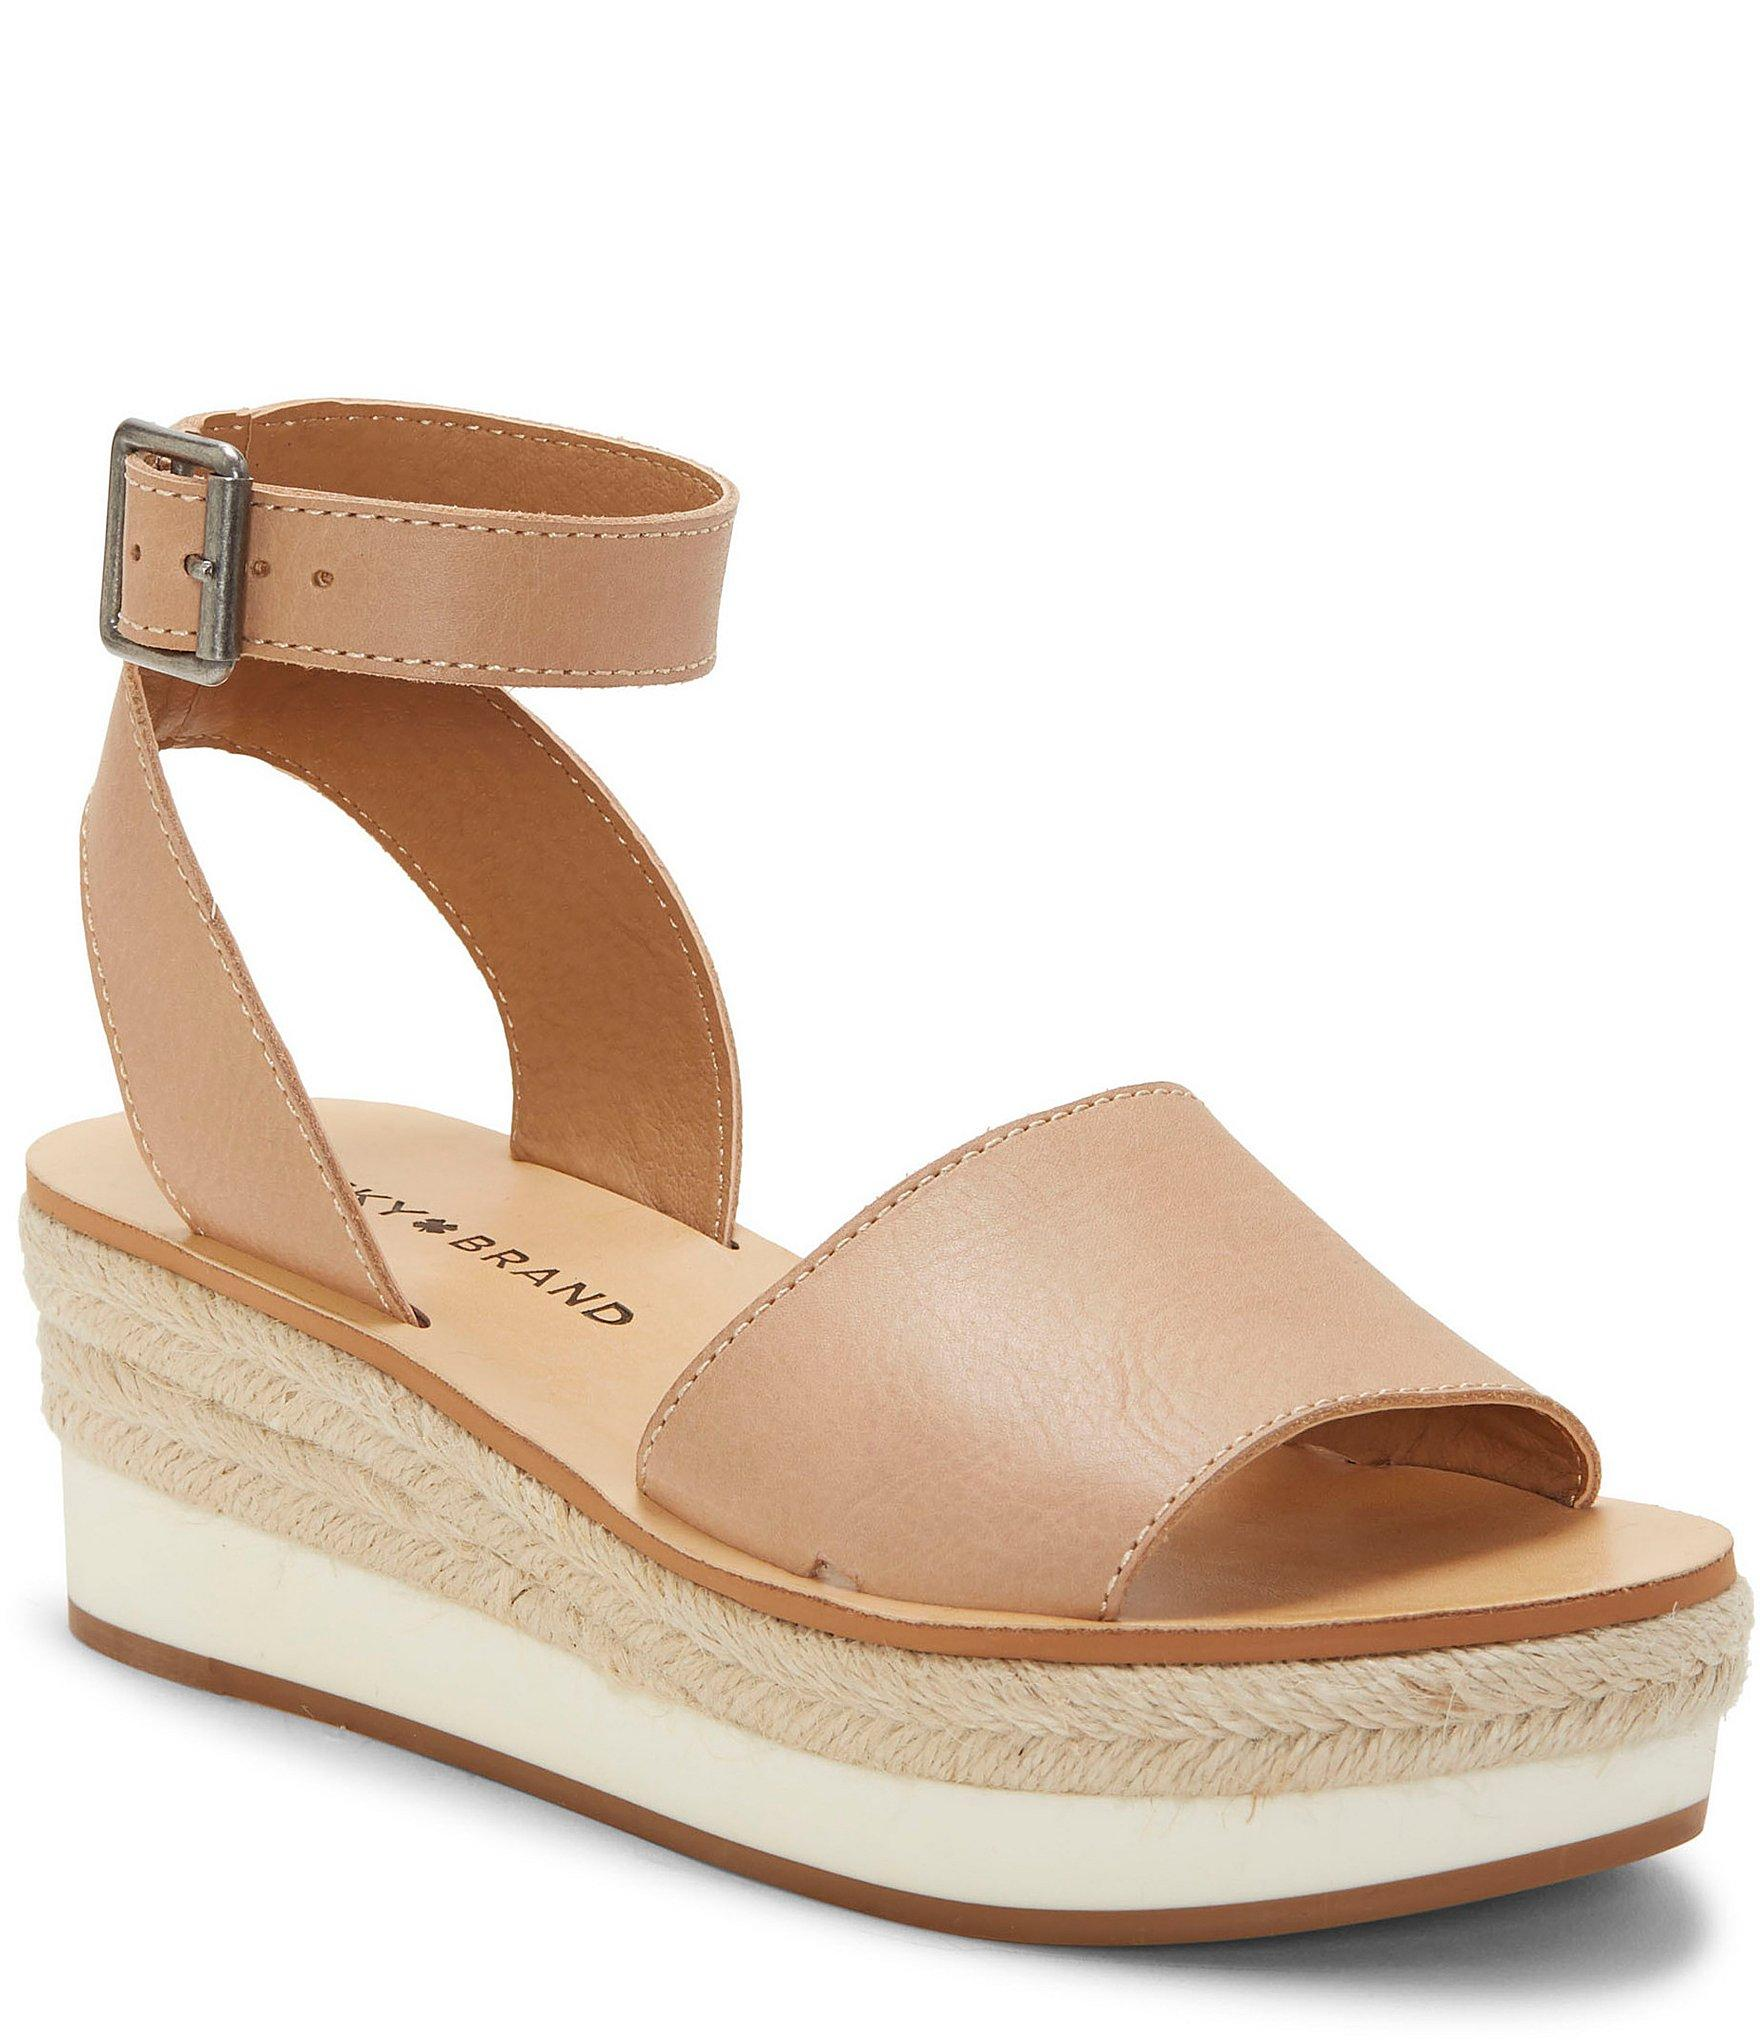 ffb0902bed1 Lucky Brand Joodith Espdarille Wedge Sandals - Lyst